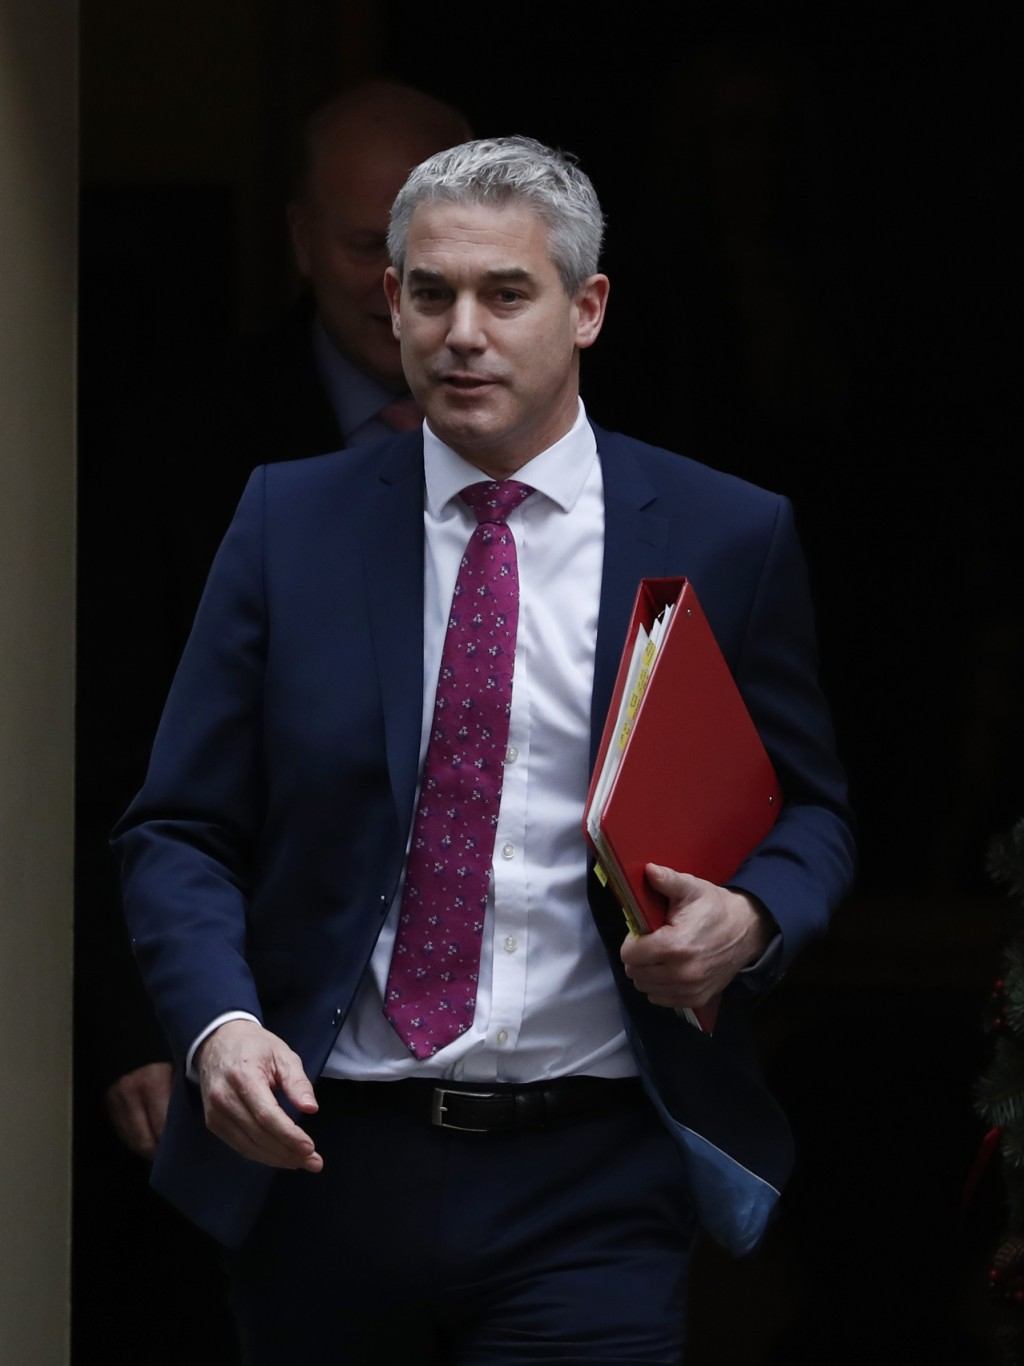 Stephen Barclay the Secretary of State for leaving the EU, walks out of 10 Downing Street, following a cabinet meeting in London Tuesday, Dec. 18, 201